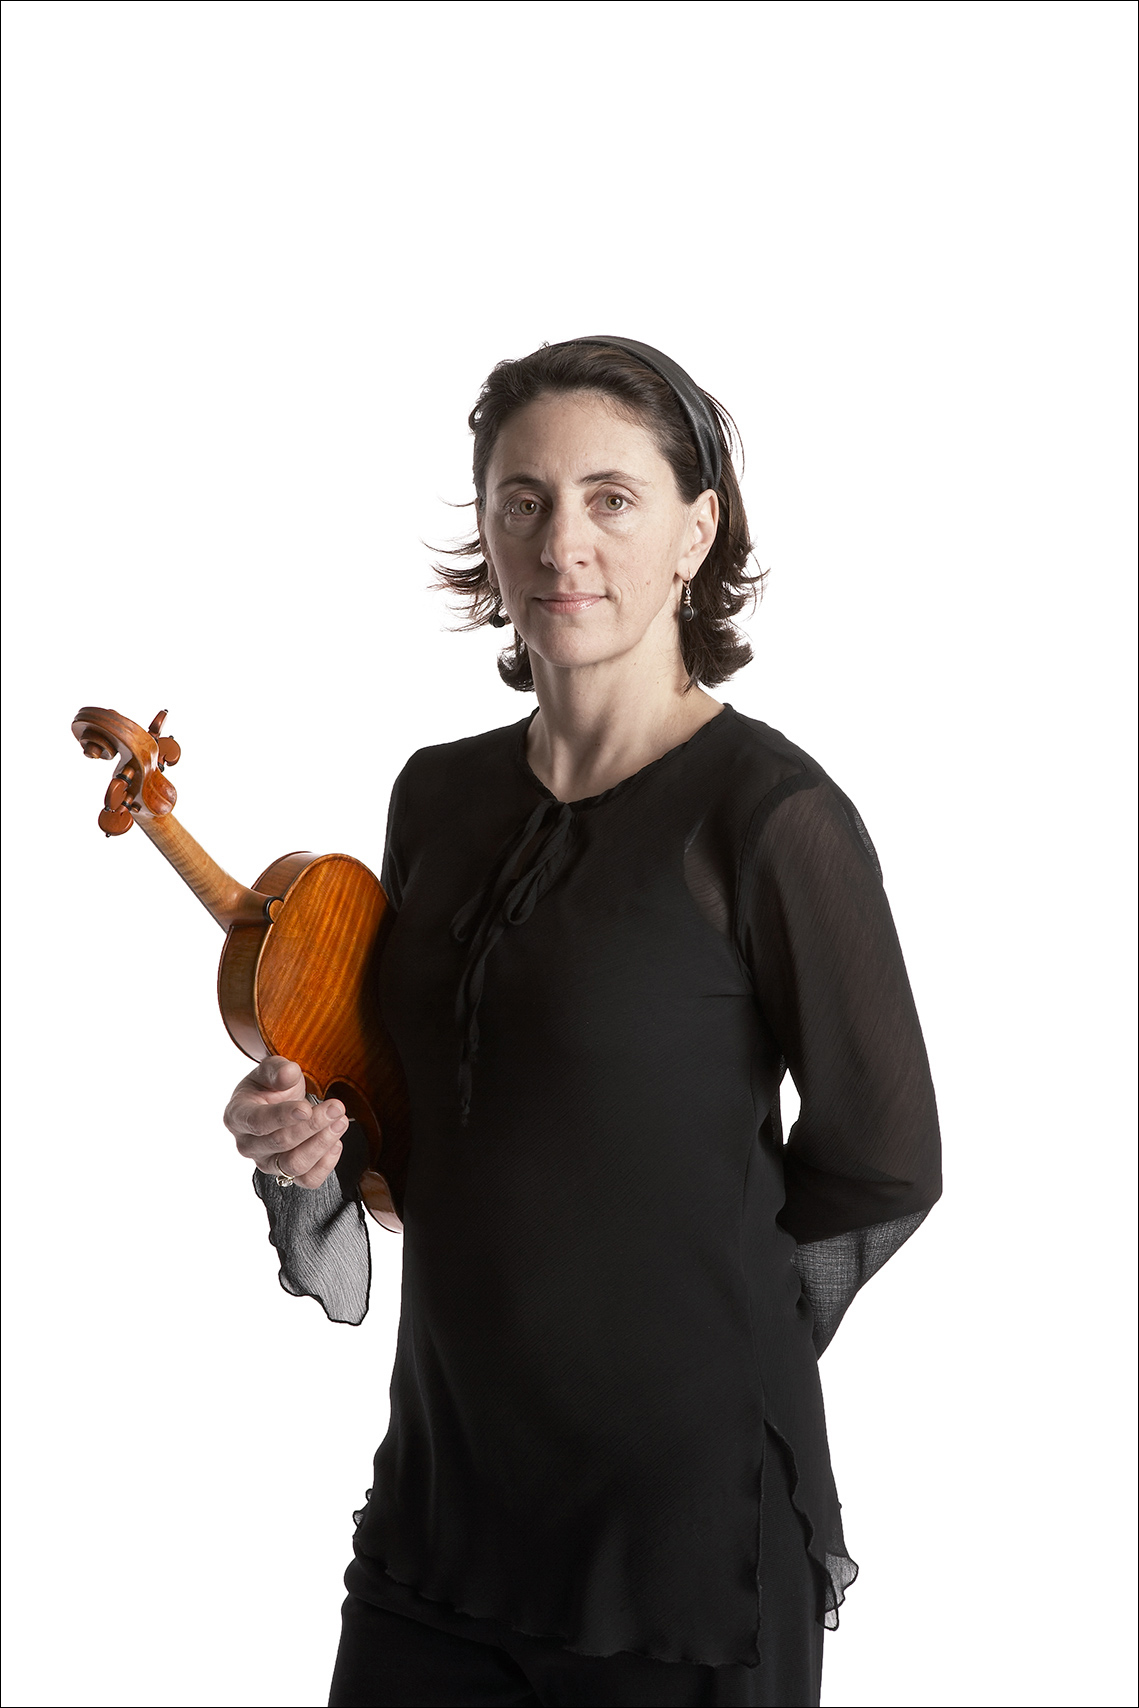 Minnesota_Orchestra_violin_Woman